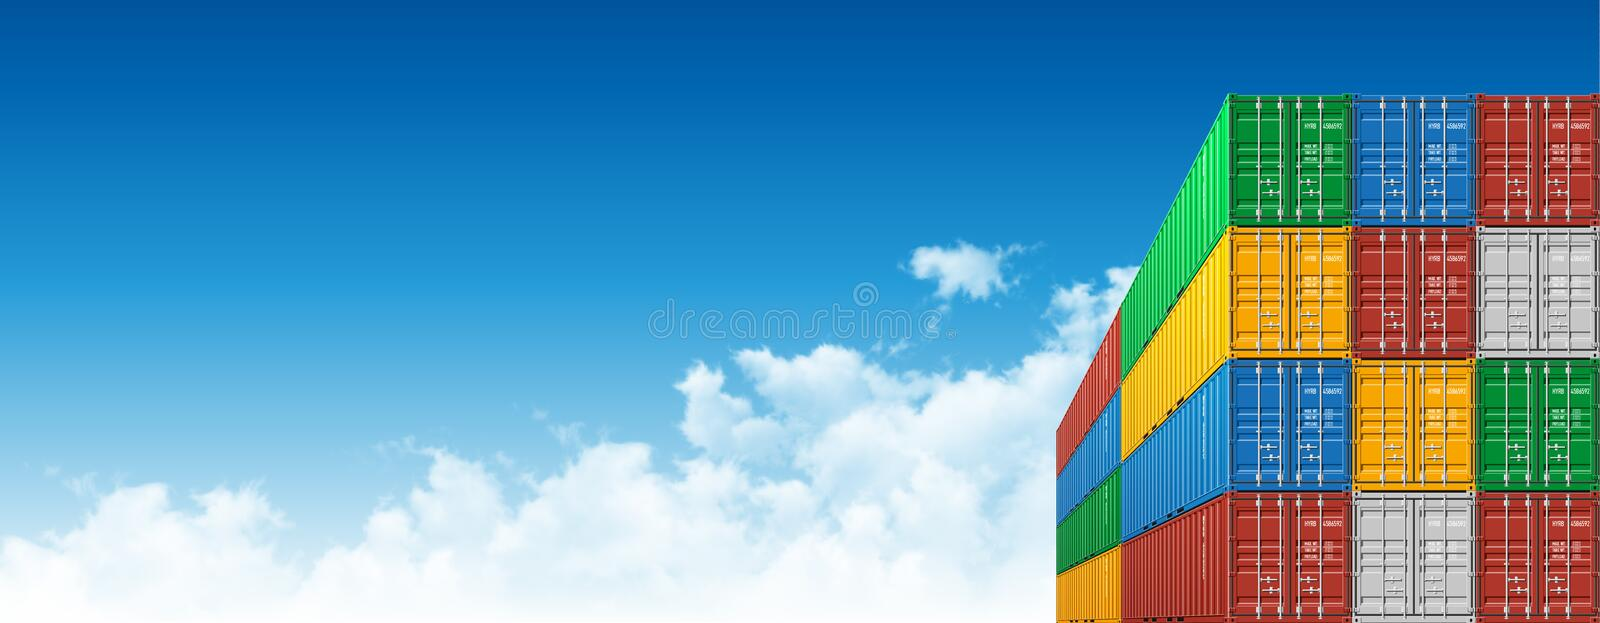 Shipping Cargo Containers for Logistics and Transportation. Colorful Shipping Cargo Containers for Logistics and Transportation. Perspective view vector illustration